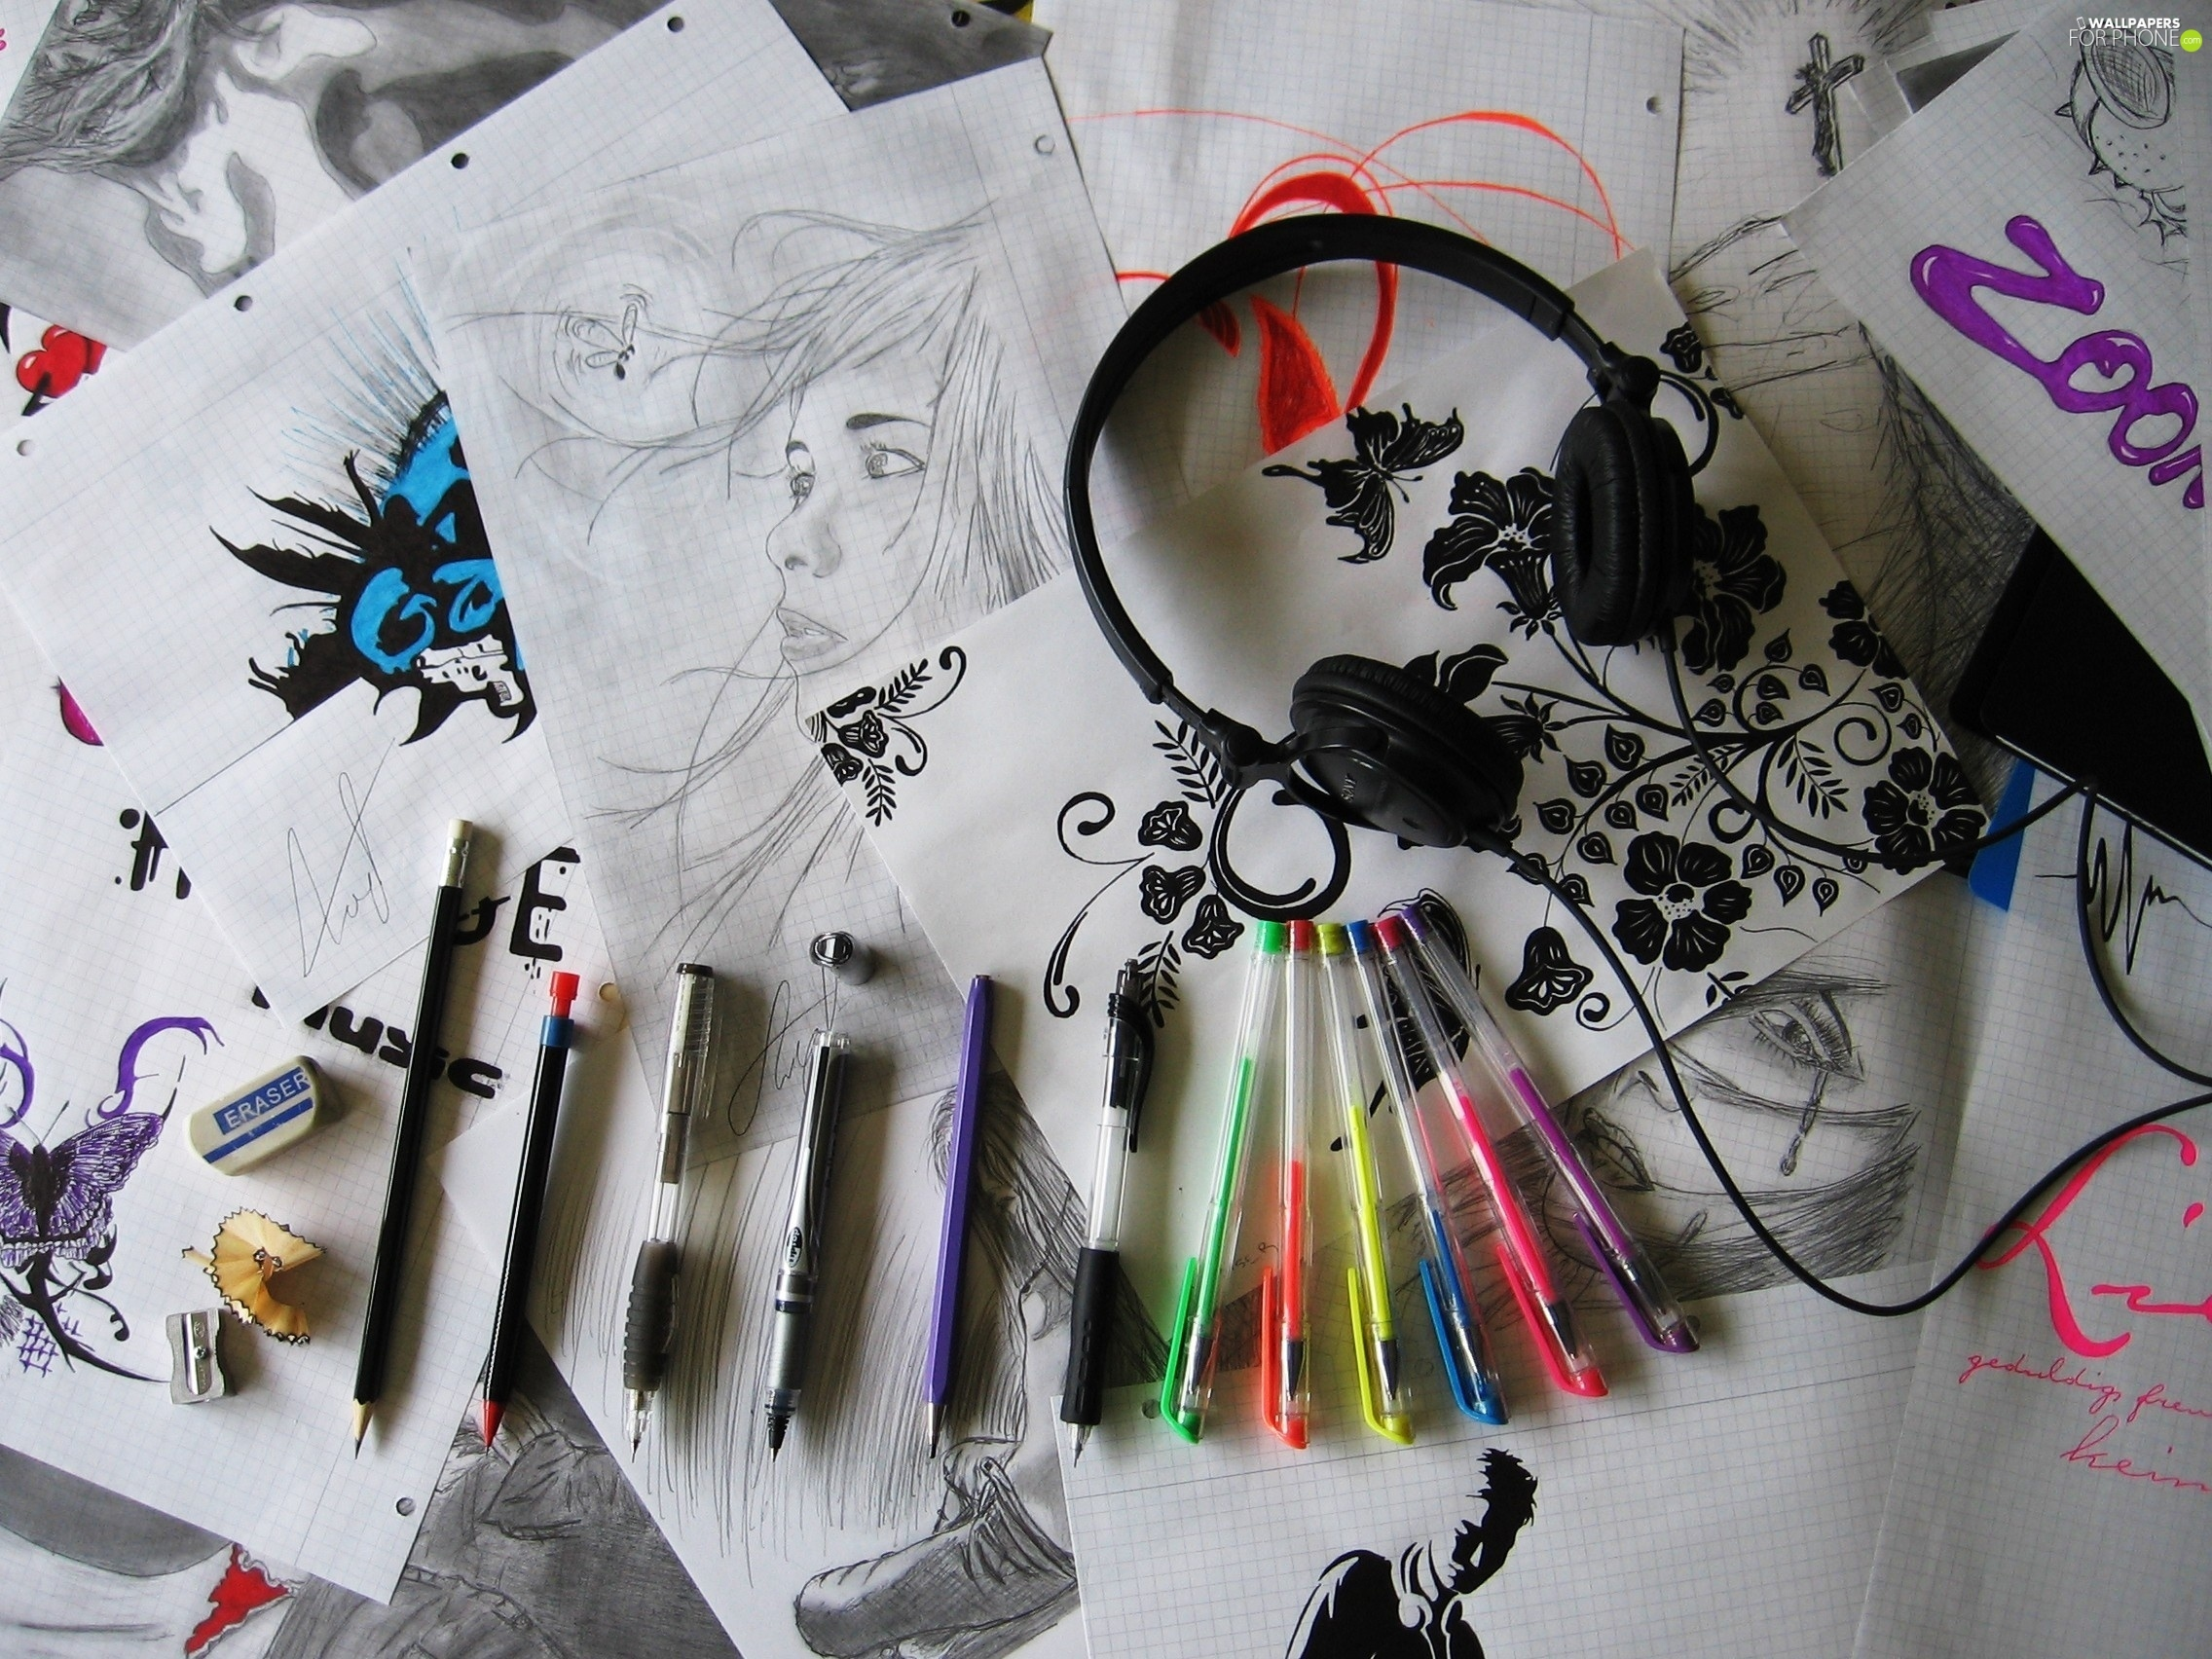 Pens, HEADPHONES, drawings, Pencils